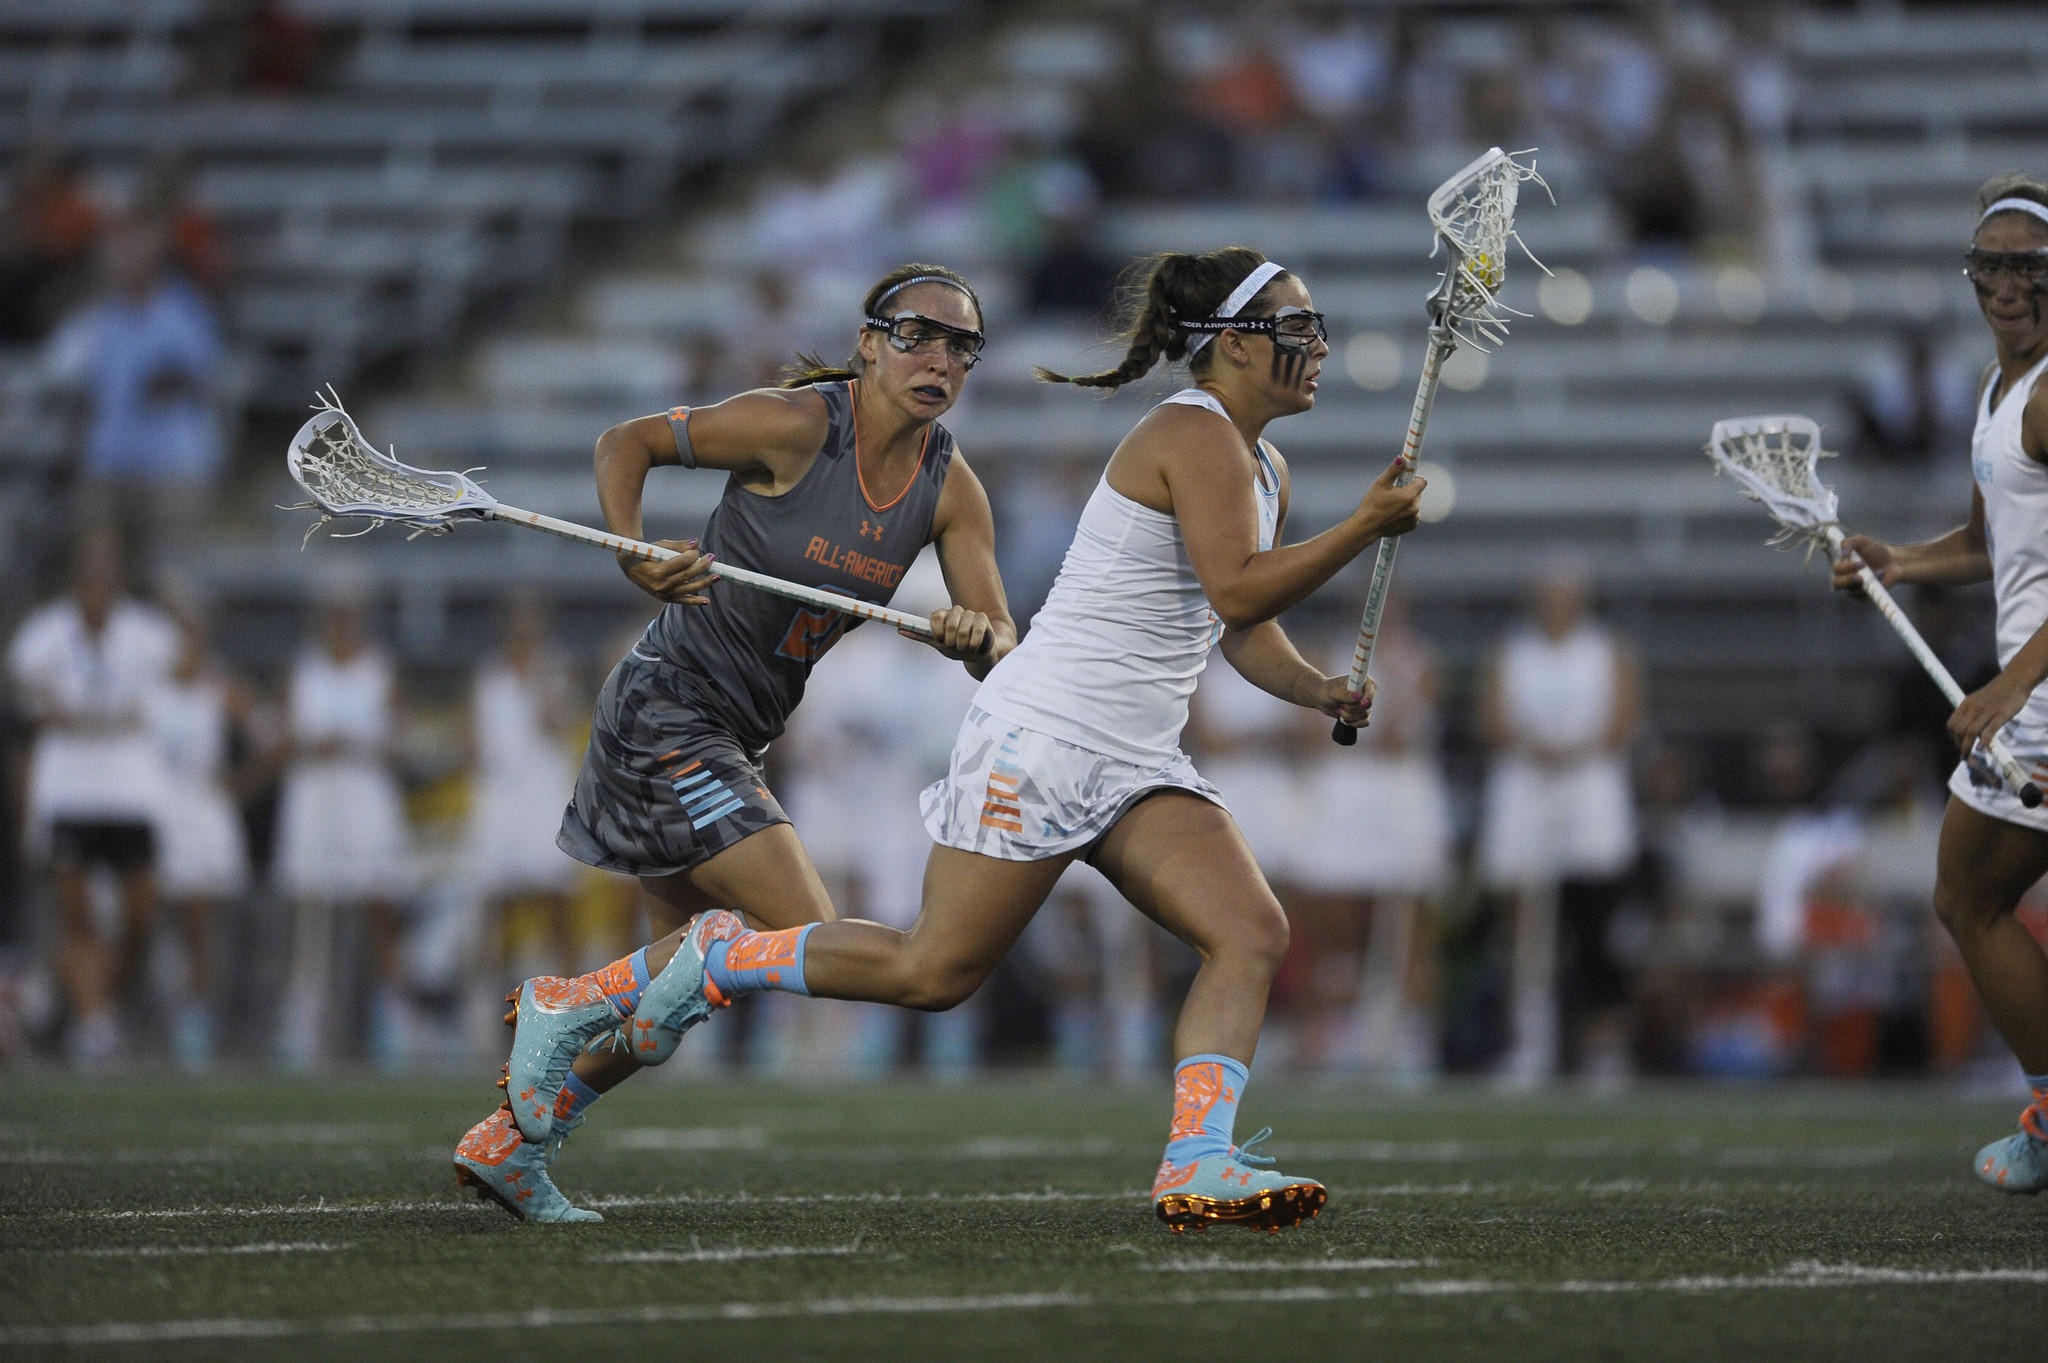 Selena Lasota chases South #4 Taylor Hensh in the 2014 Under Armour All-America Lacrosse Classic.